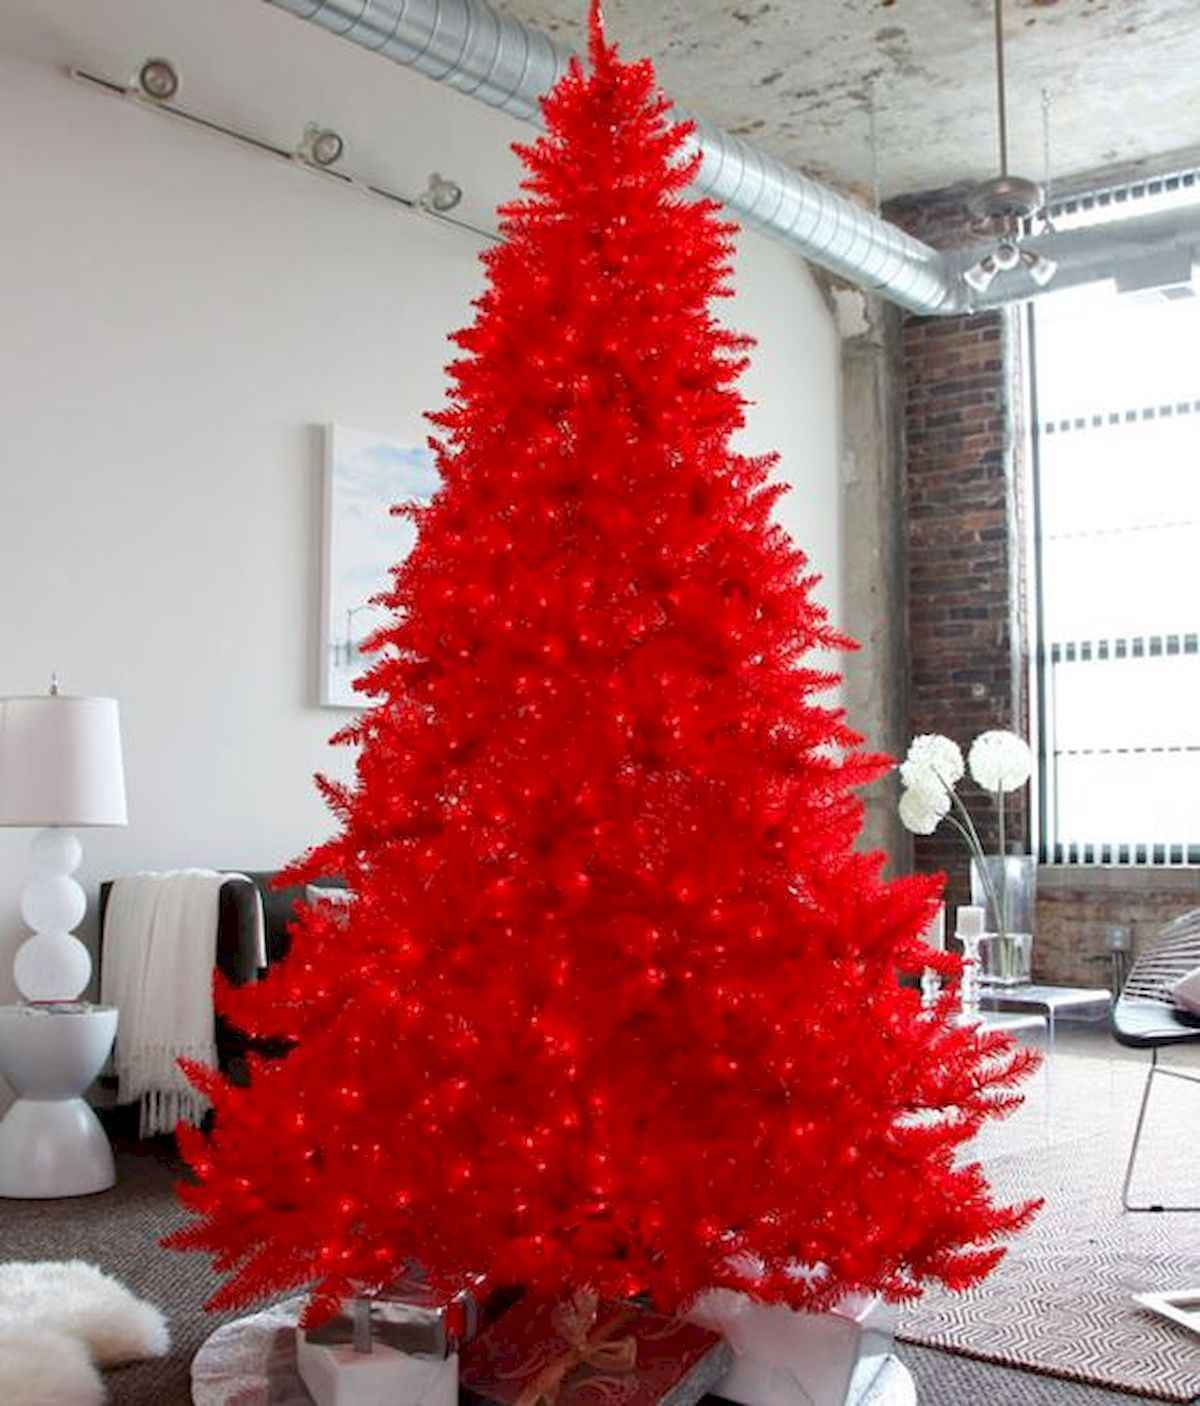 60 awesome christmas tree decorations ideas (49)